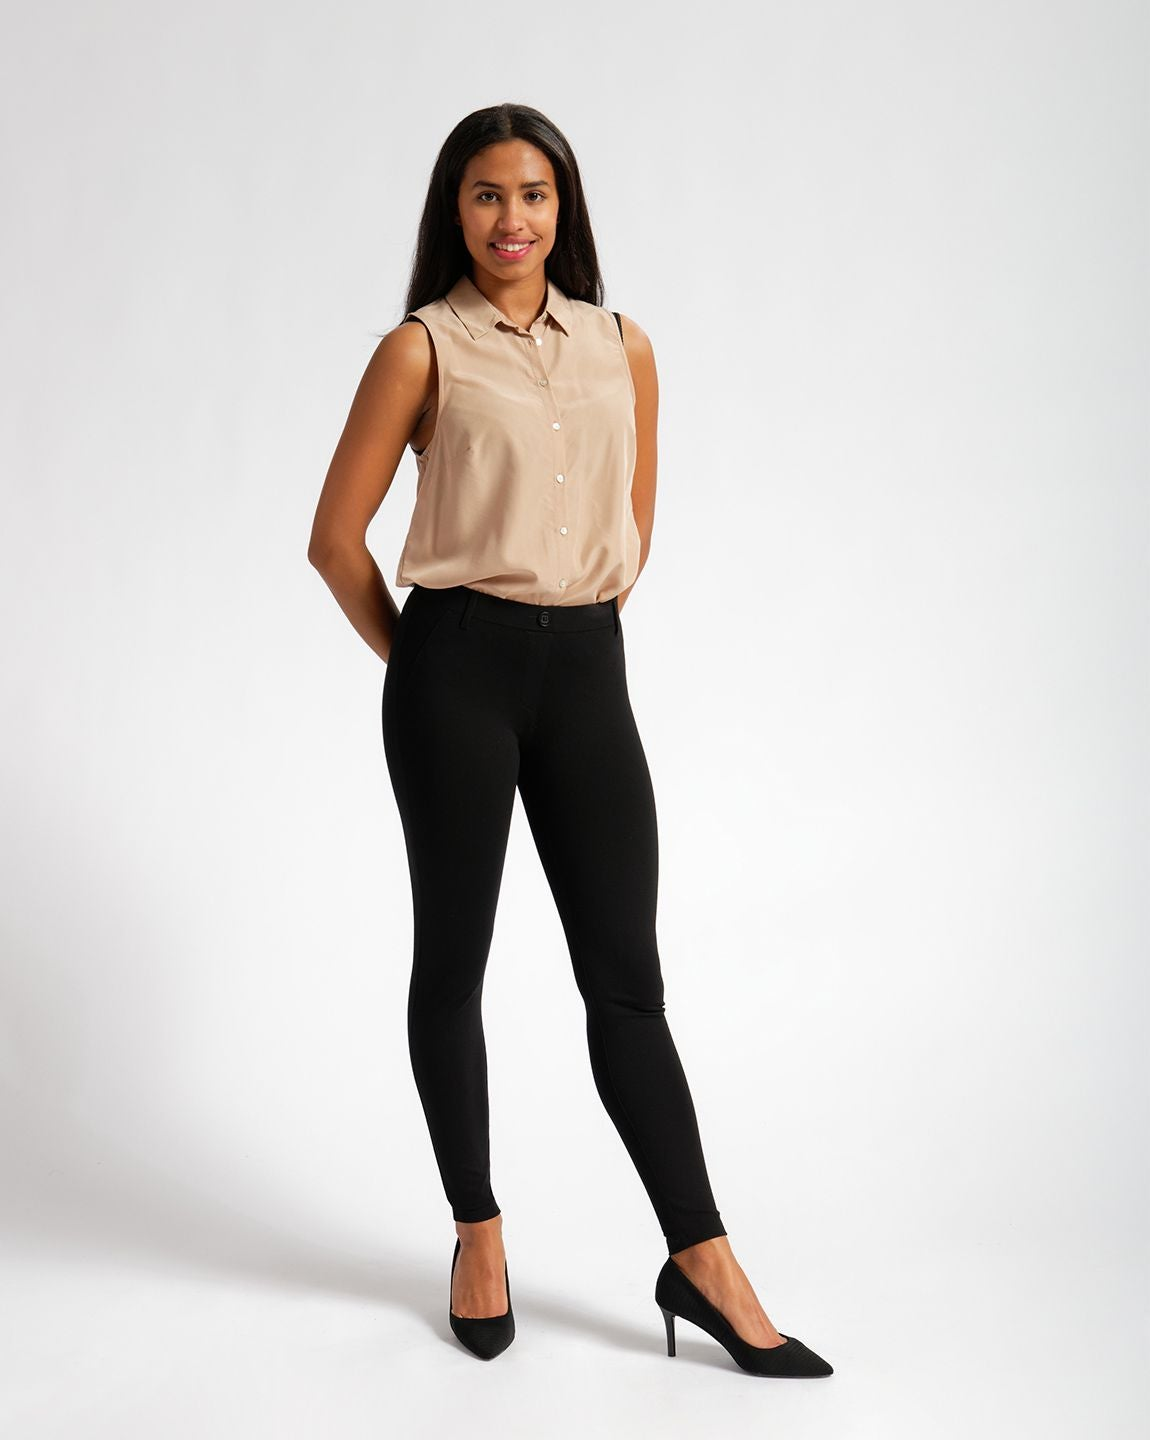 Betabrand Dress Pant Yoga Pants